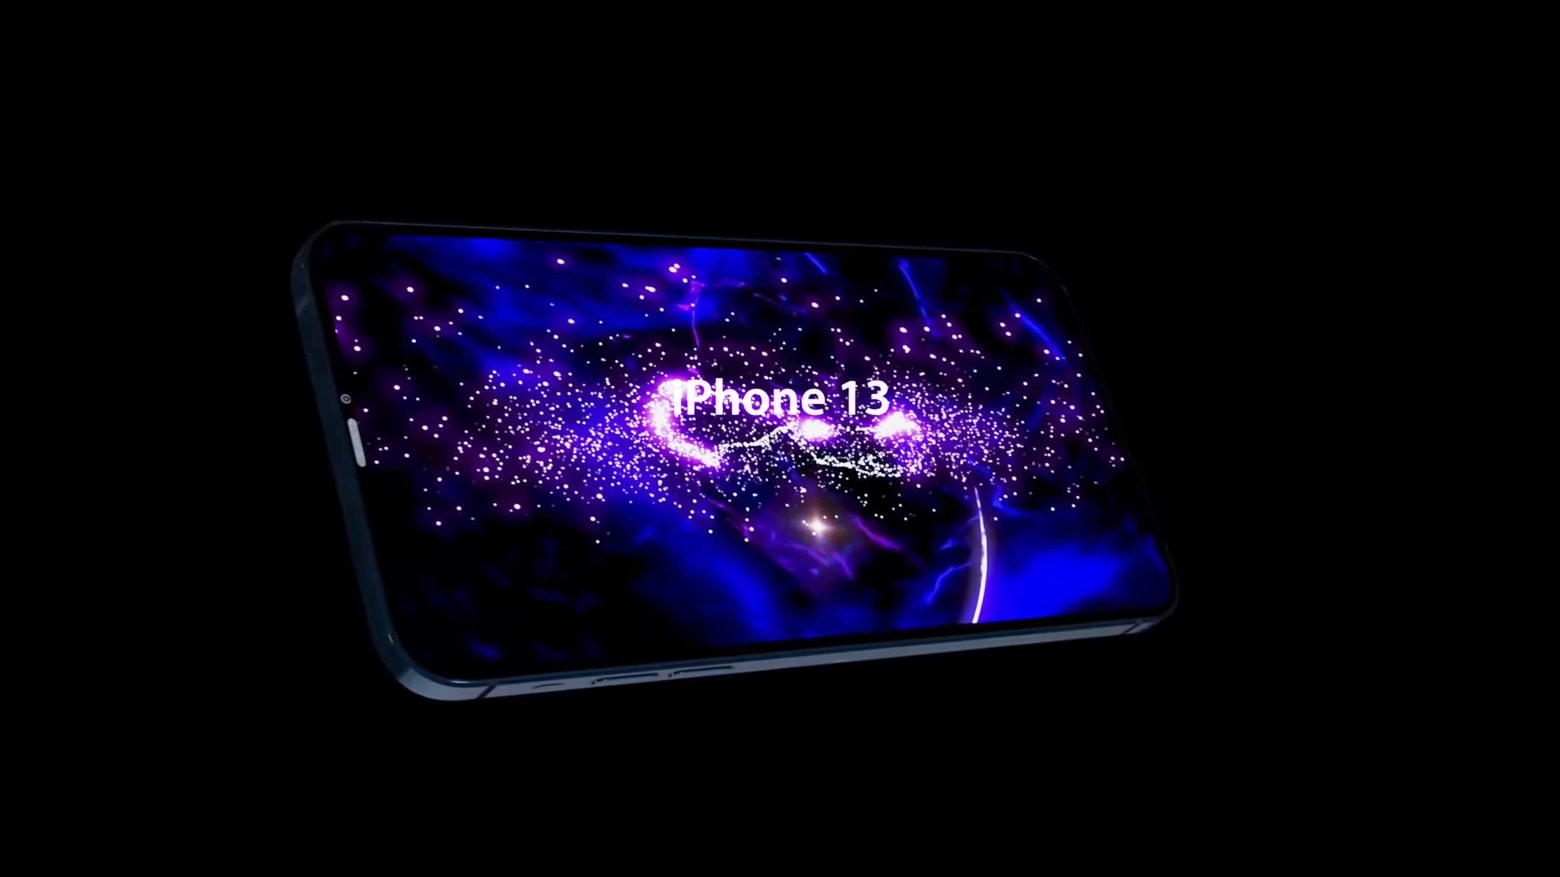 iPhone 13 could usher in smoother 120 Hz displays